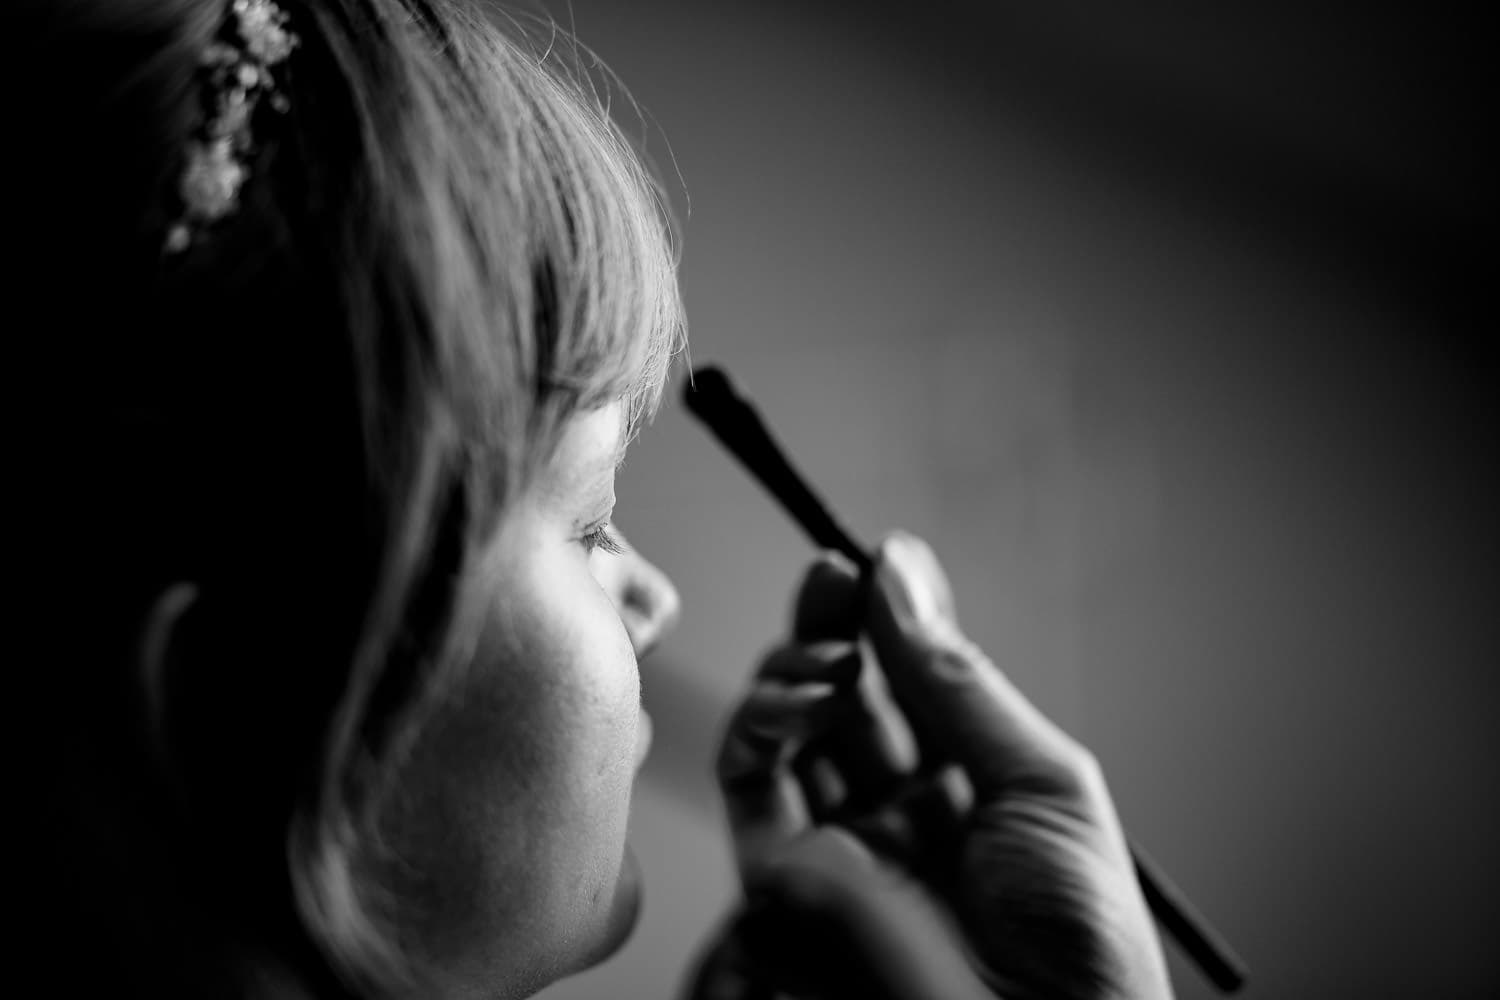 Warwick House Wedding Photography captures a beautiful picture of a bride having her makeup applied